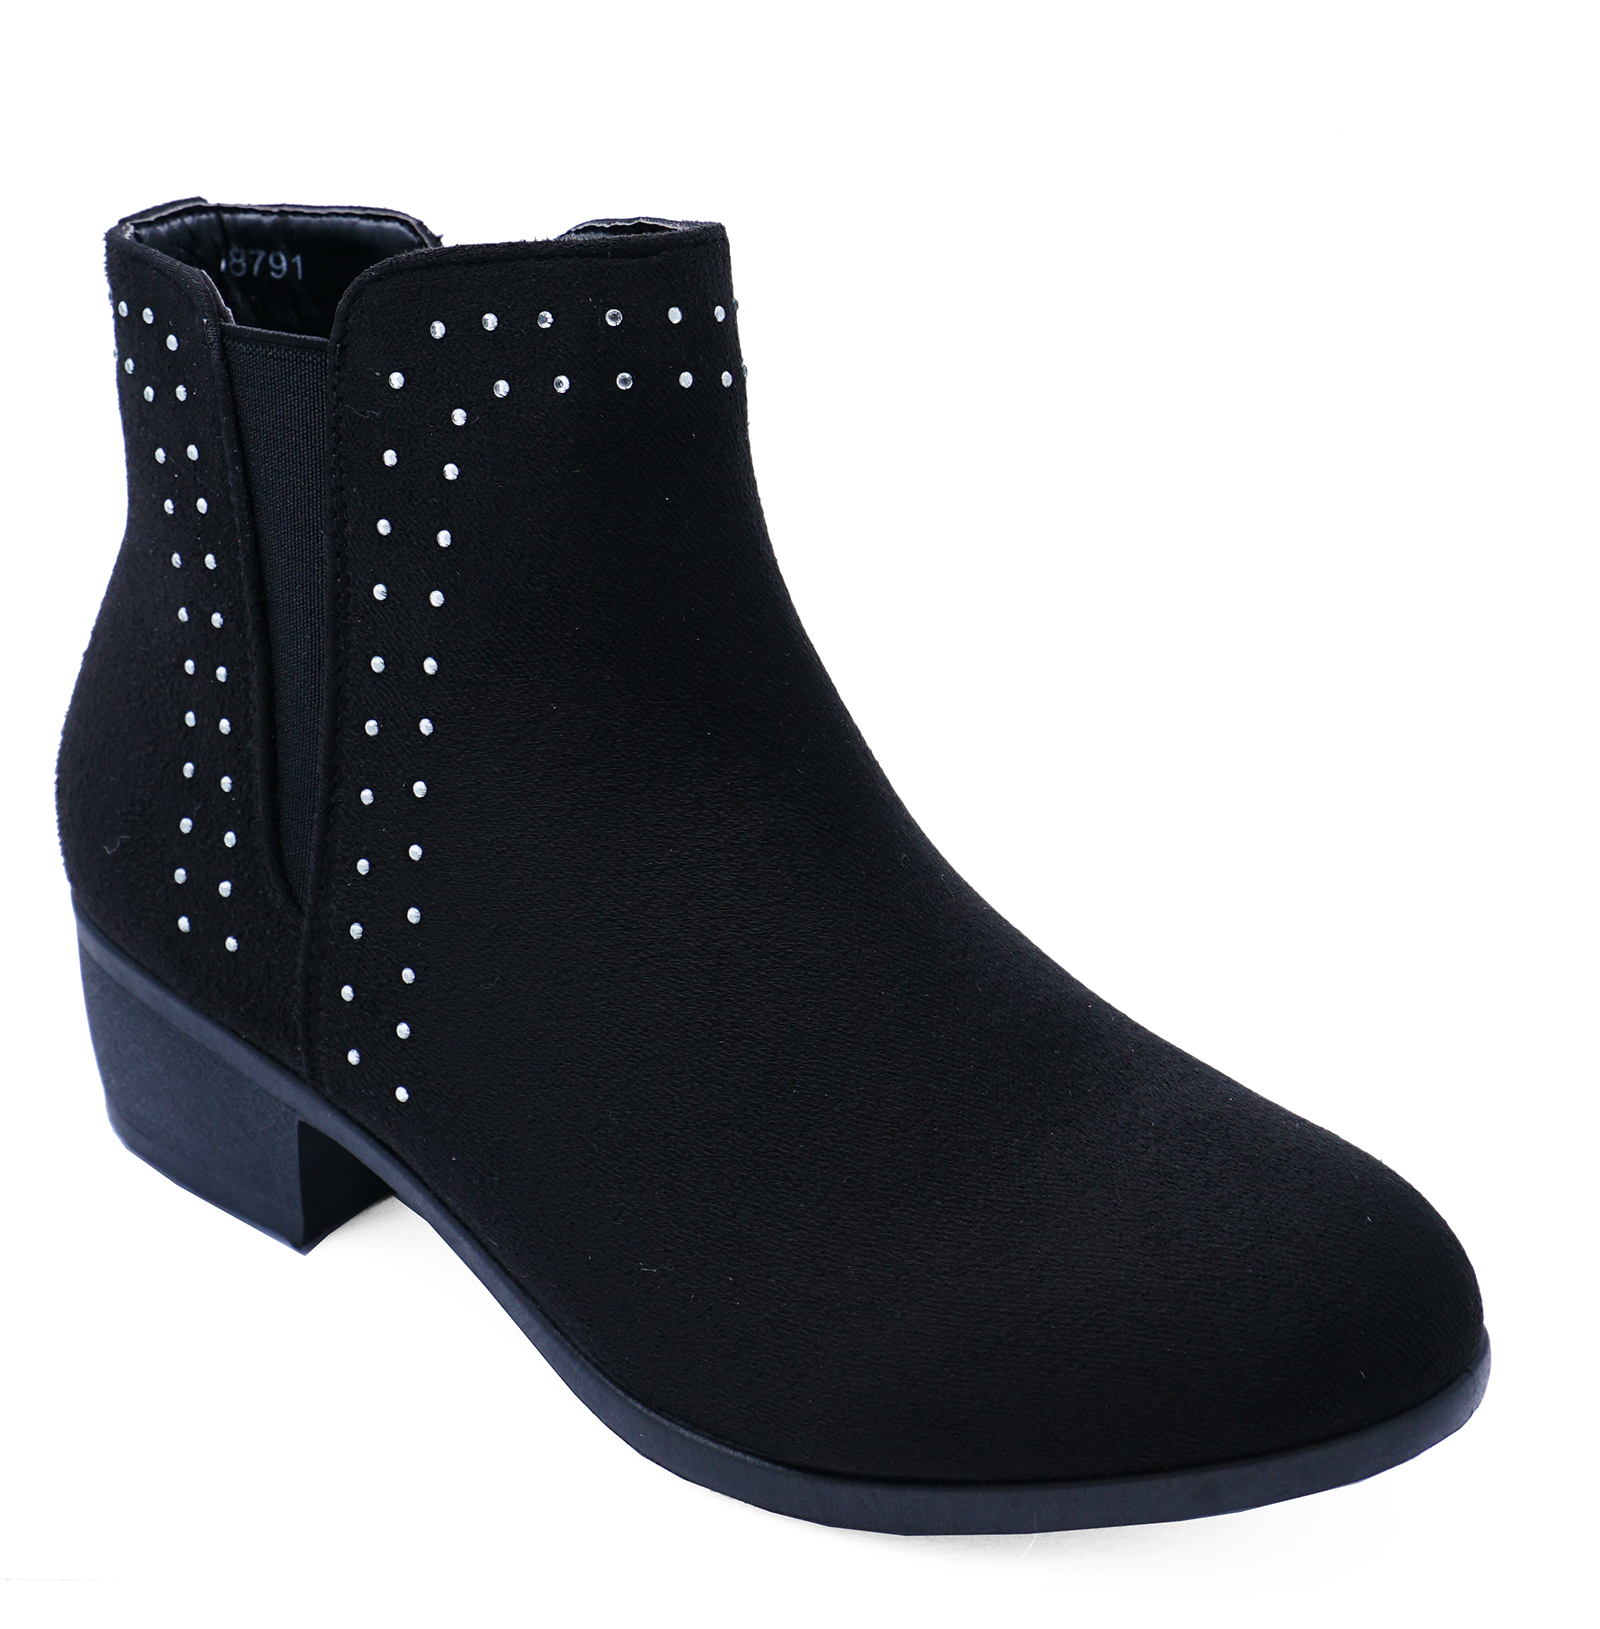 LADIES BLACK CHELSEA COWBOY SMART CASUAL WORK PULL-ON FLAT BOOTS SHOES UK 3-8